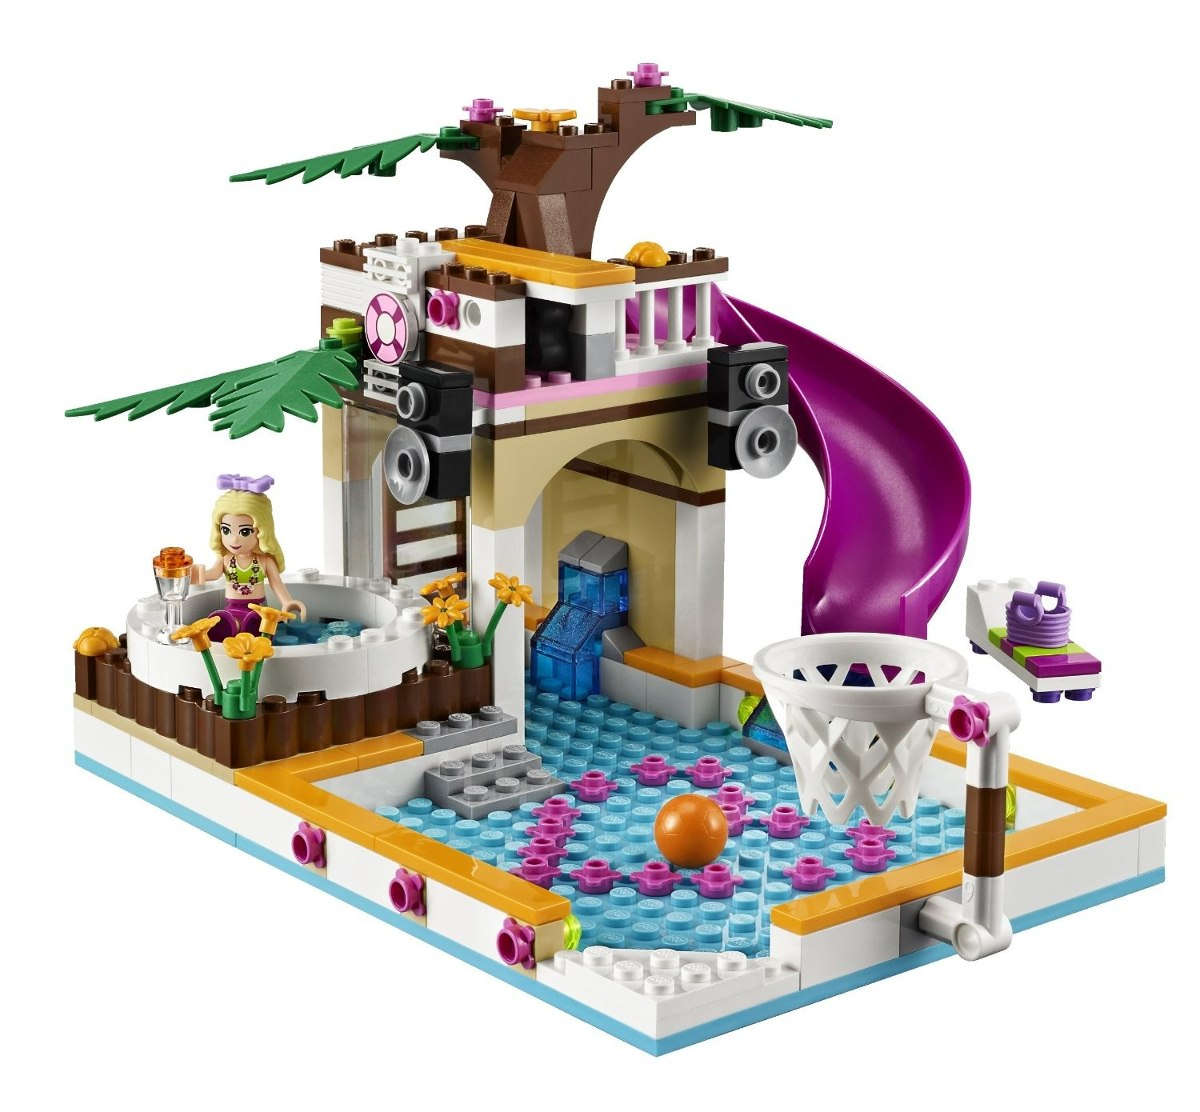 Lego Friends Piscina Lego Friends Heartlake City Pool 41008 3 299 00 En